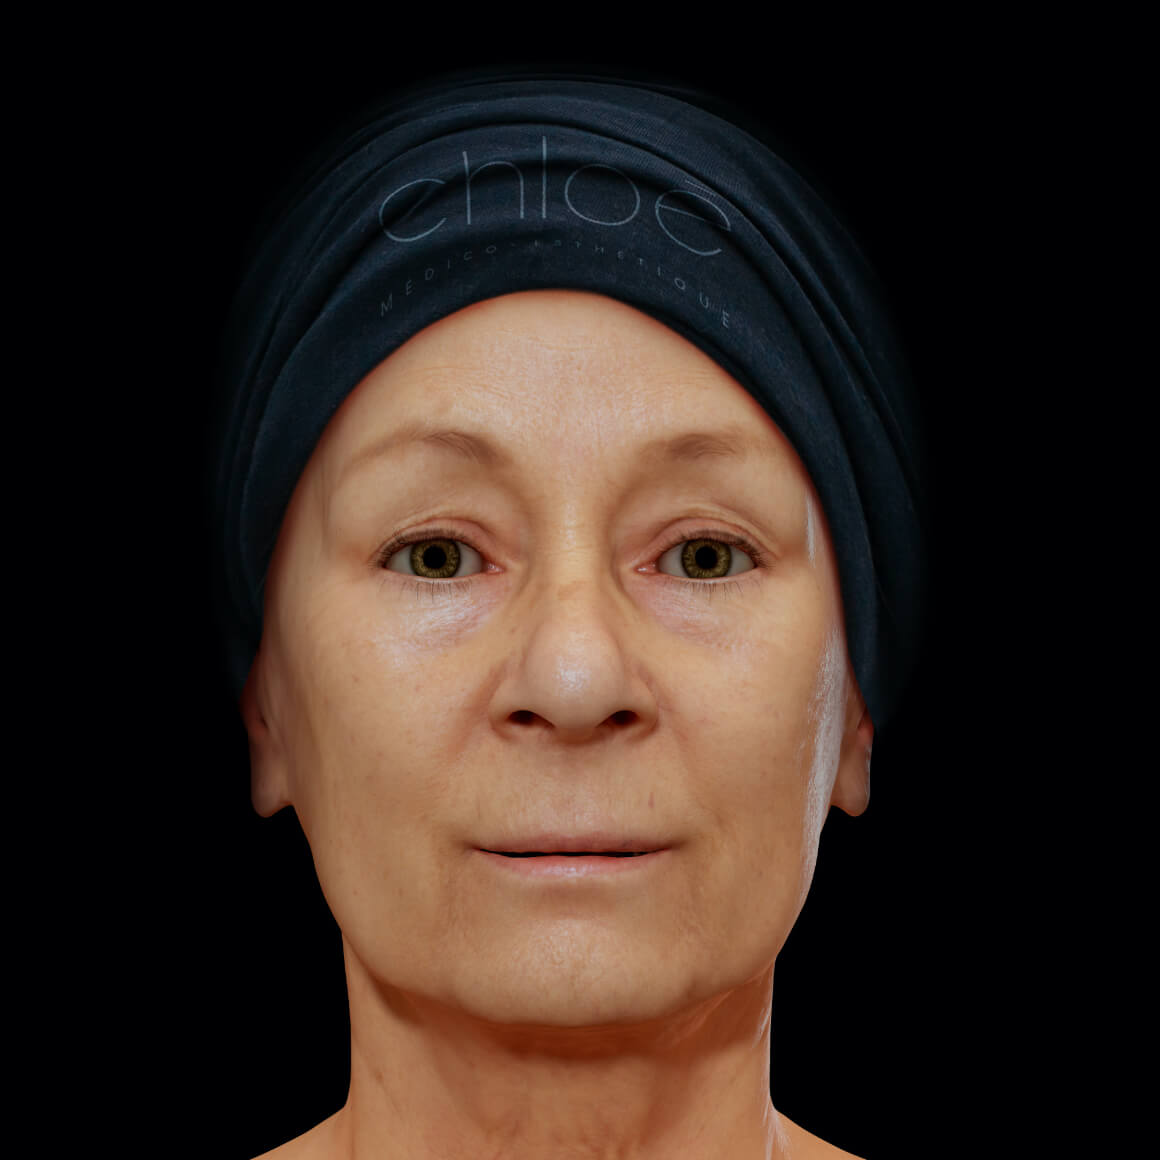 Woman, patient at Clinique Chloé, facing front, after mesotherapy treatments for wrinkle reduction